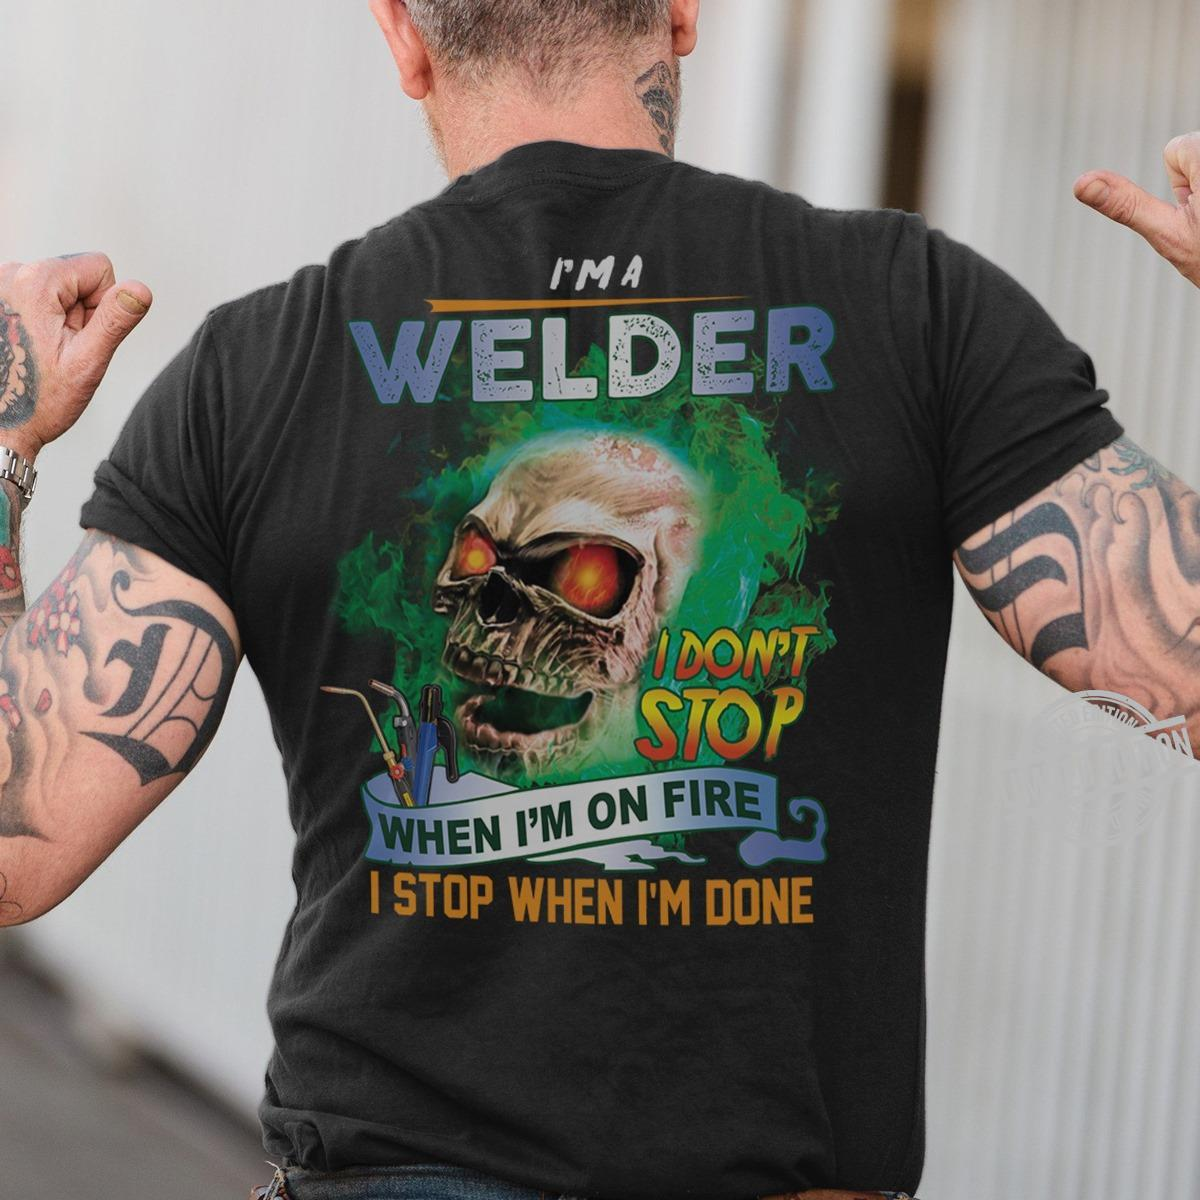 I'm A Welder I Don't Stop When I'm On Fire I Stop When I'm Done Shirt